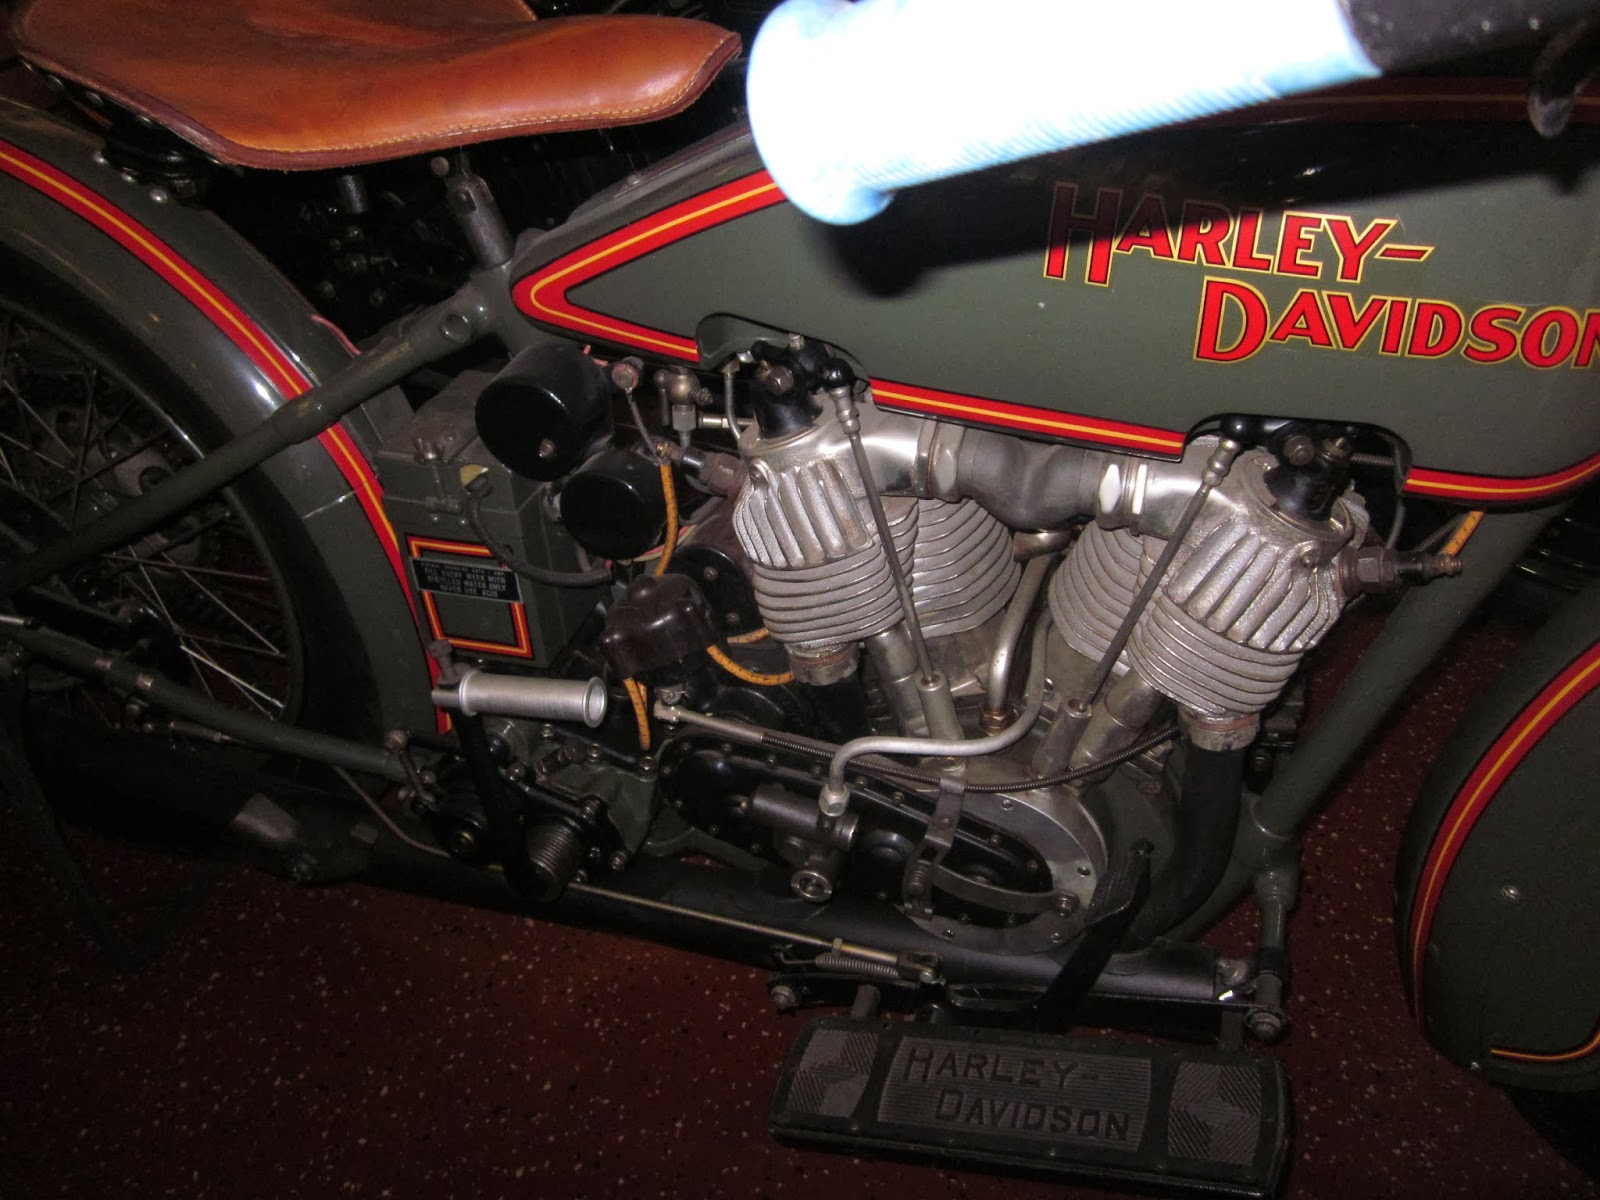 harley davidson jdcb on display at the world of motorcycles museum ...